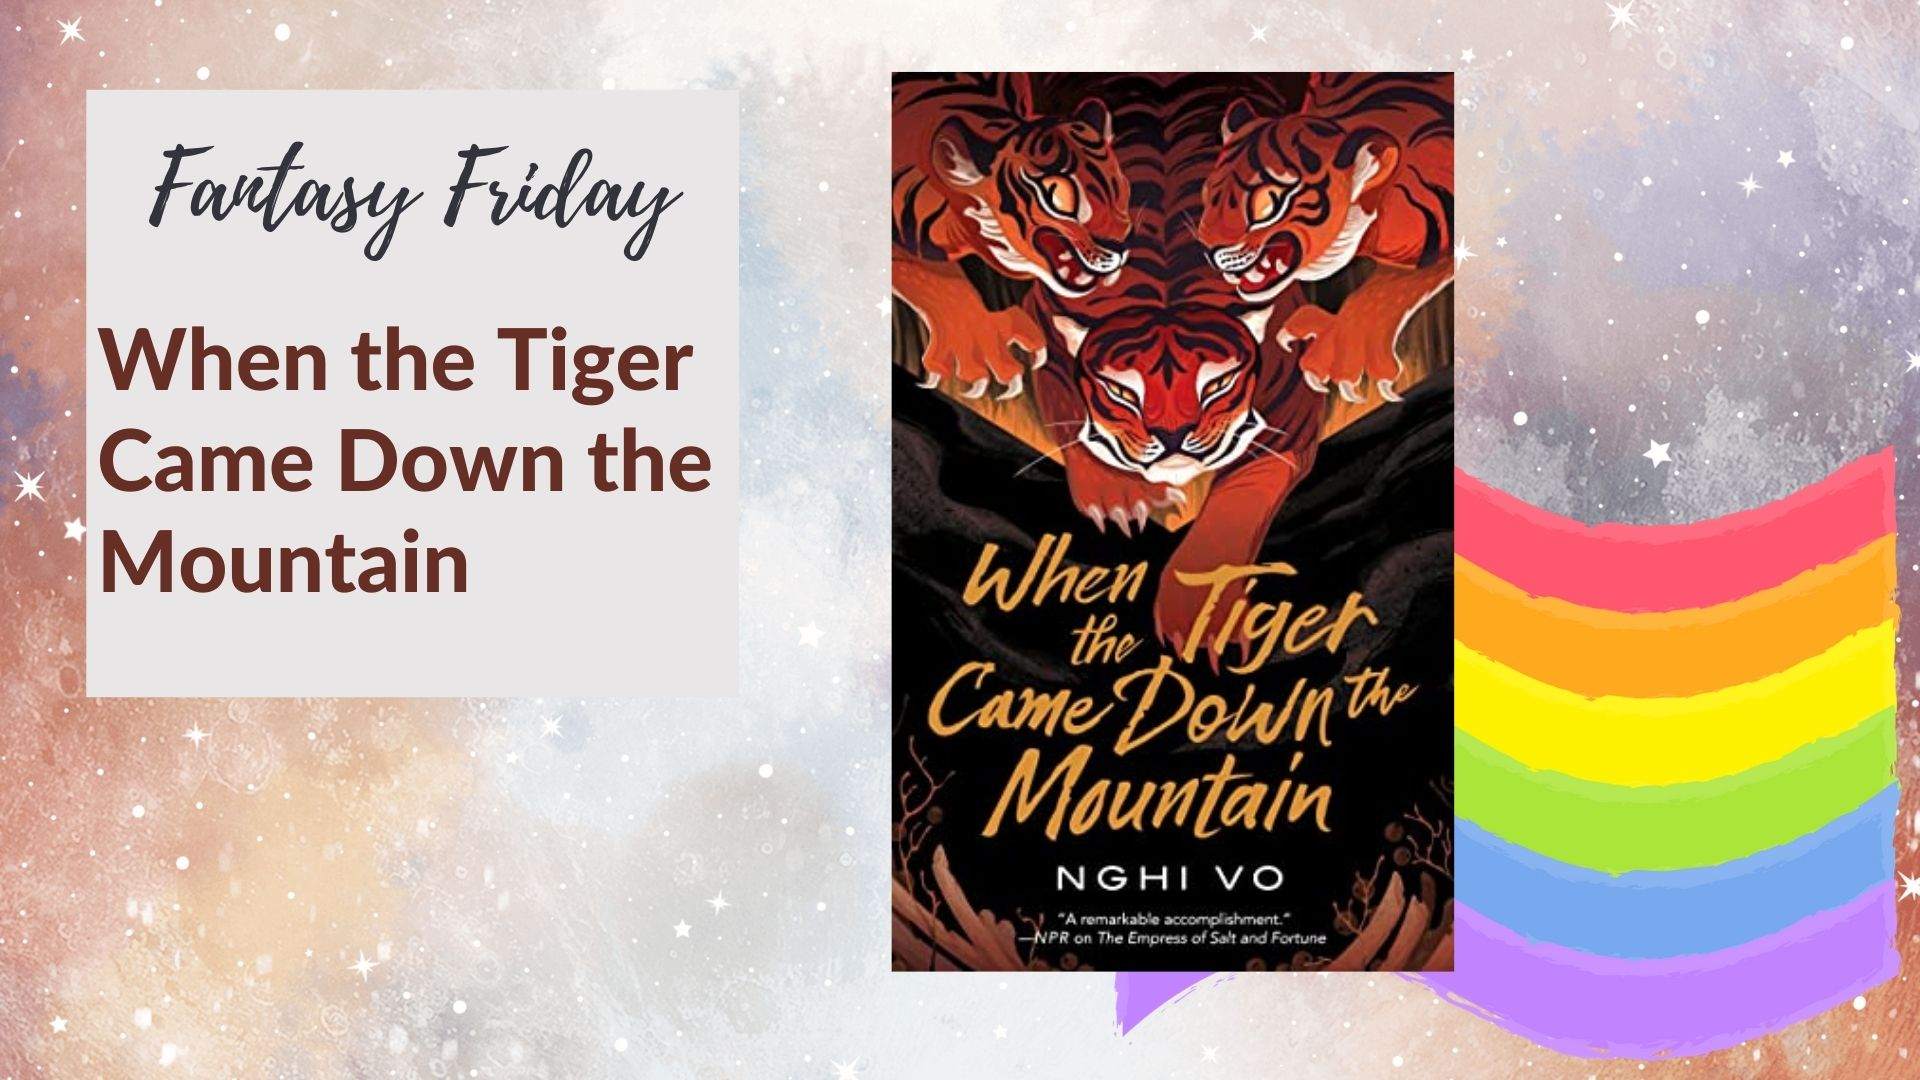 Fantasy Friday: When the Tiger Came Down the Mountain by Nghi Vo